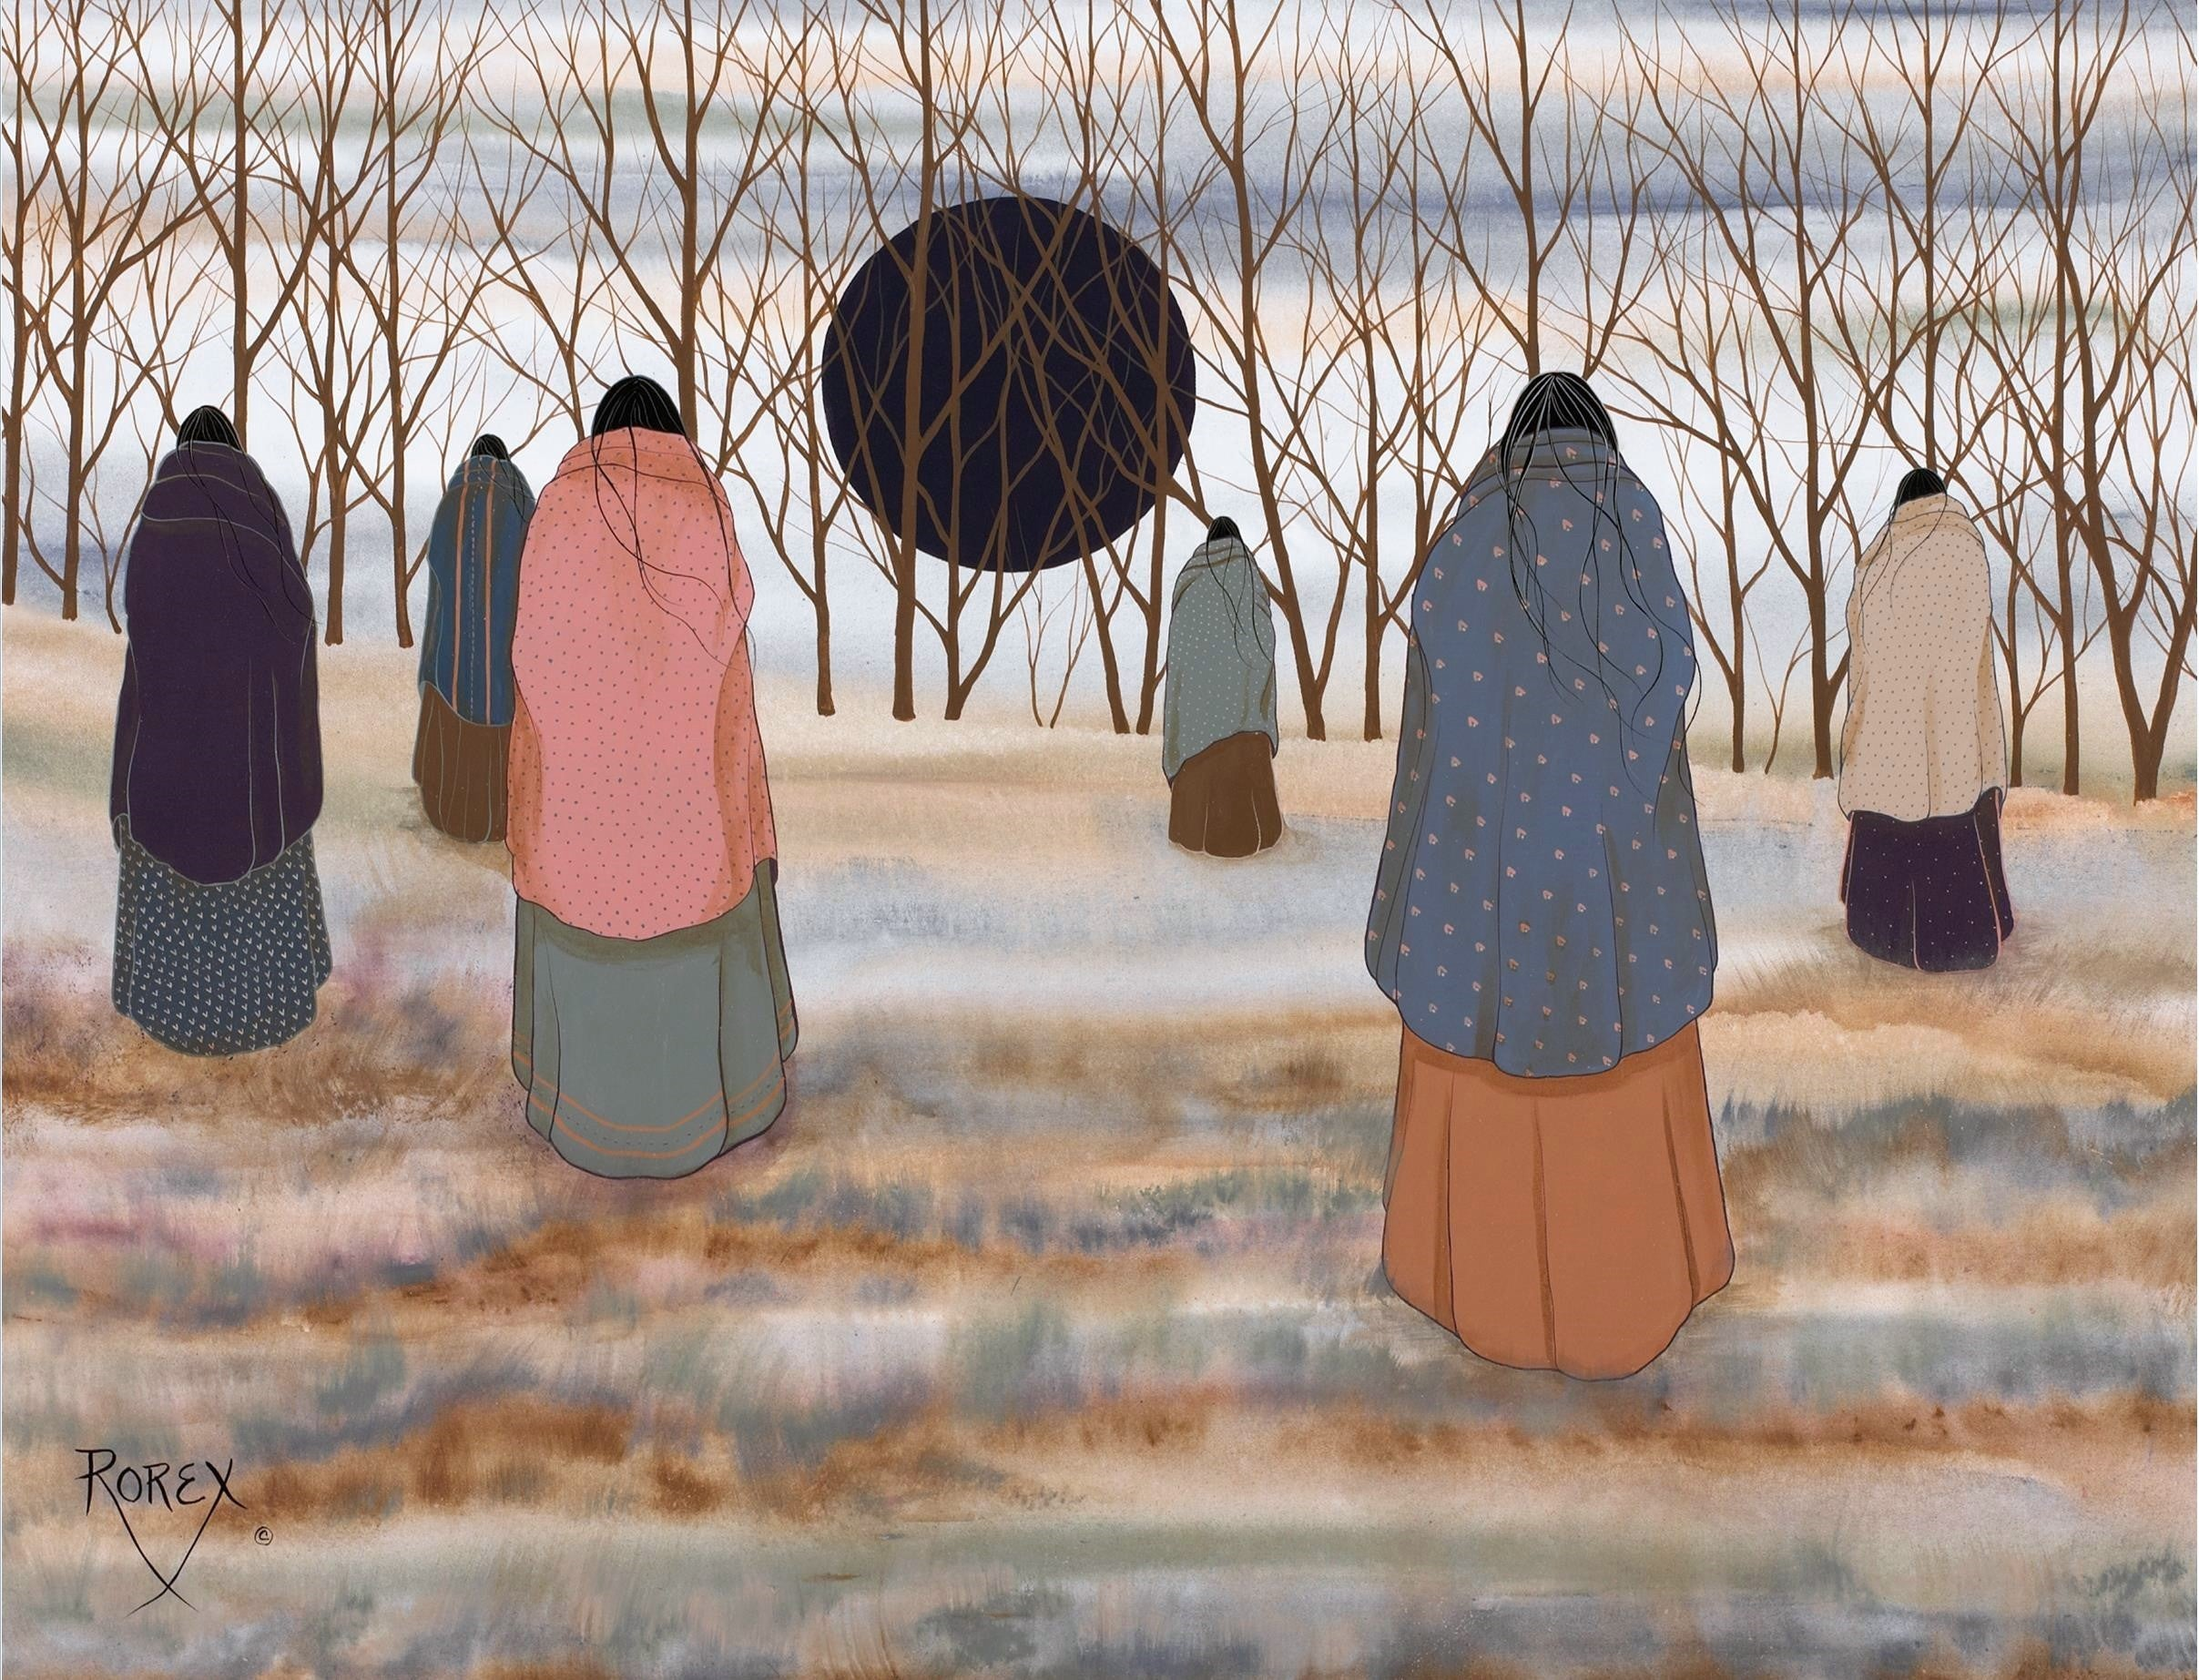 Six tribal women in brightly colored blankets walking toward the woods